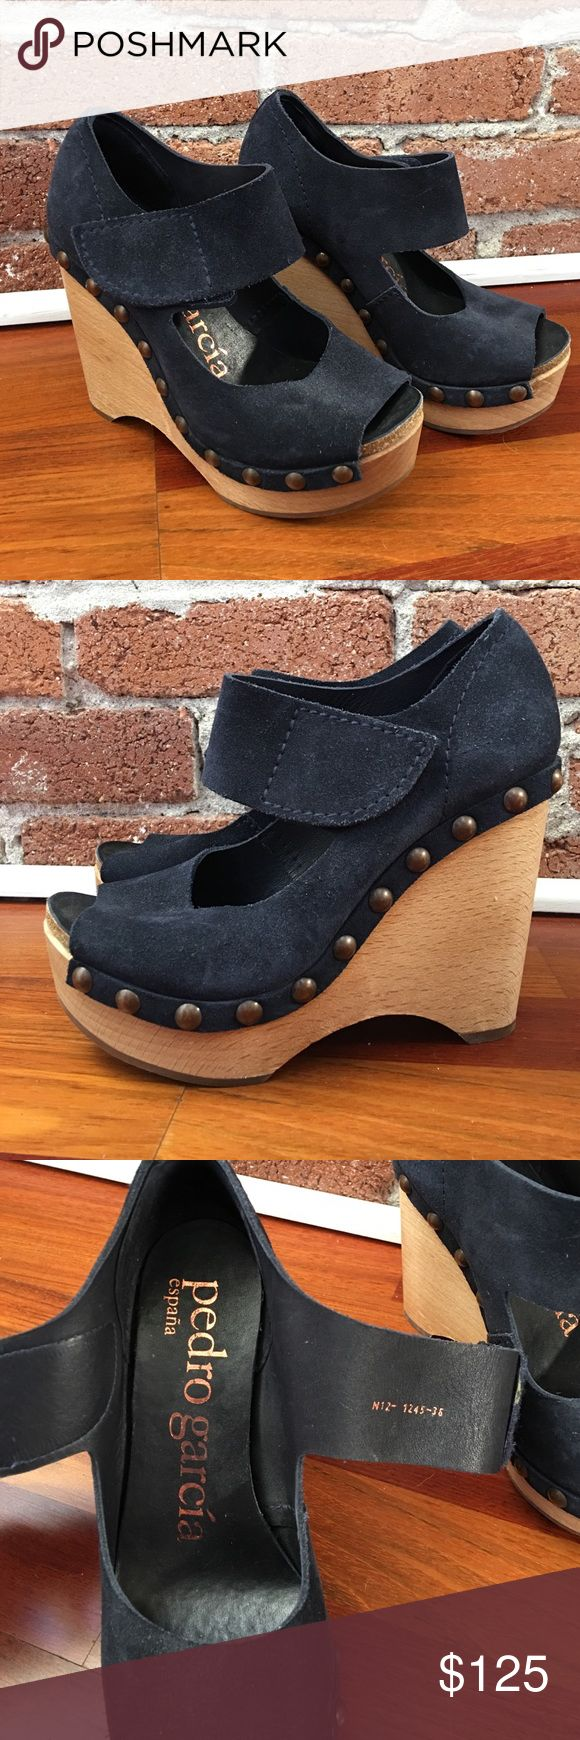 Pedro Garcia Wedges Like new navy suede Pedro Garcia wedges. Beautiful shoes made in Spain. Fits like US size 6 Pedro Garcia Shoes Wedges